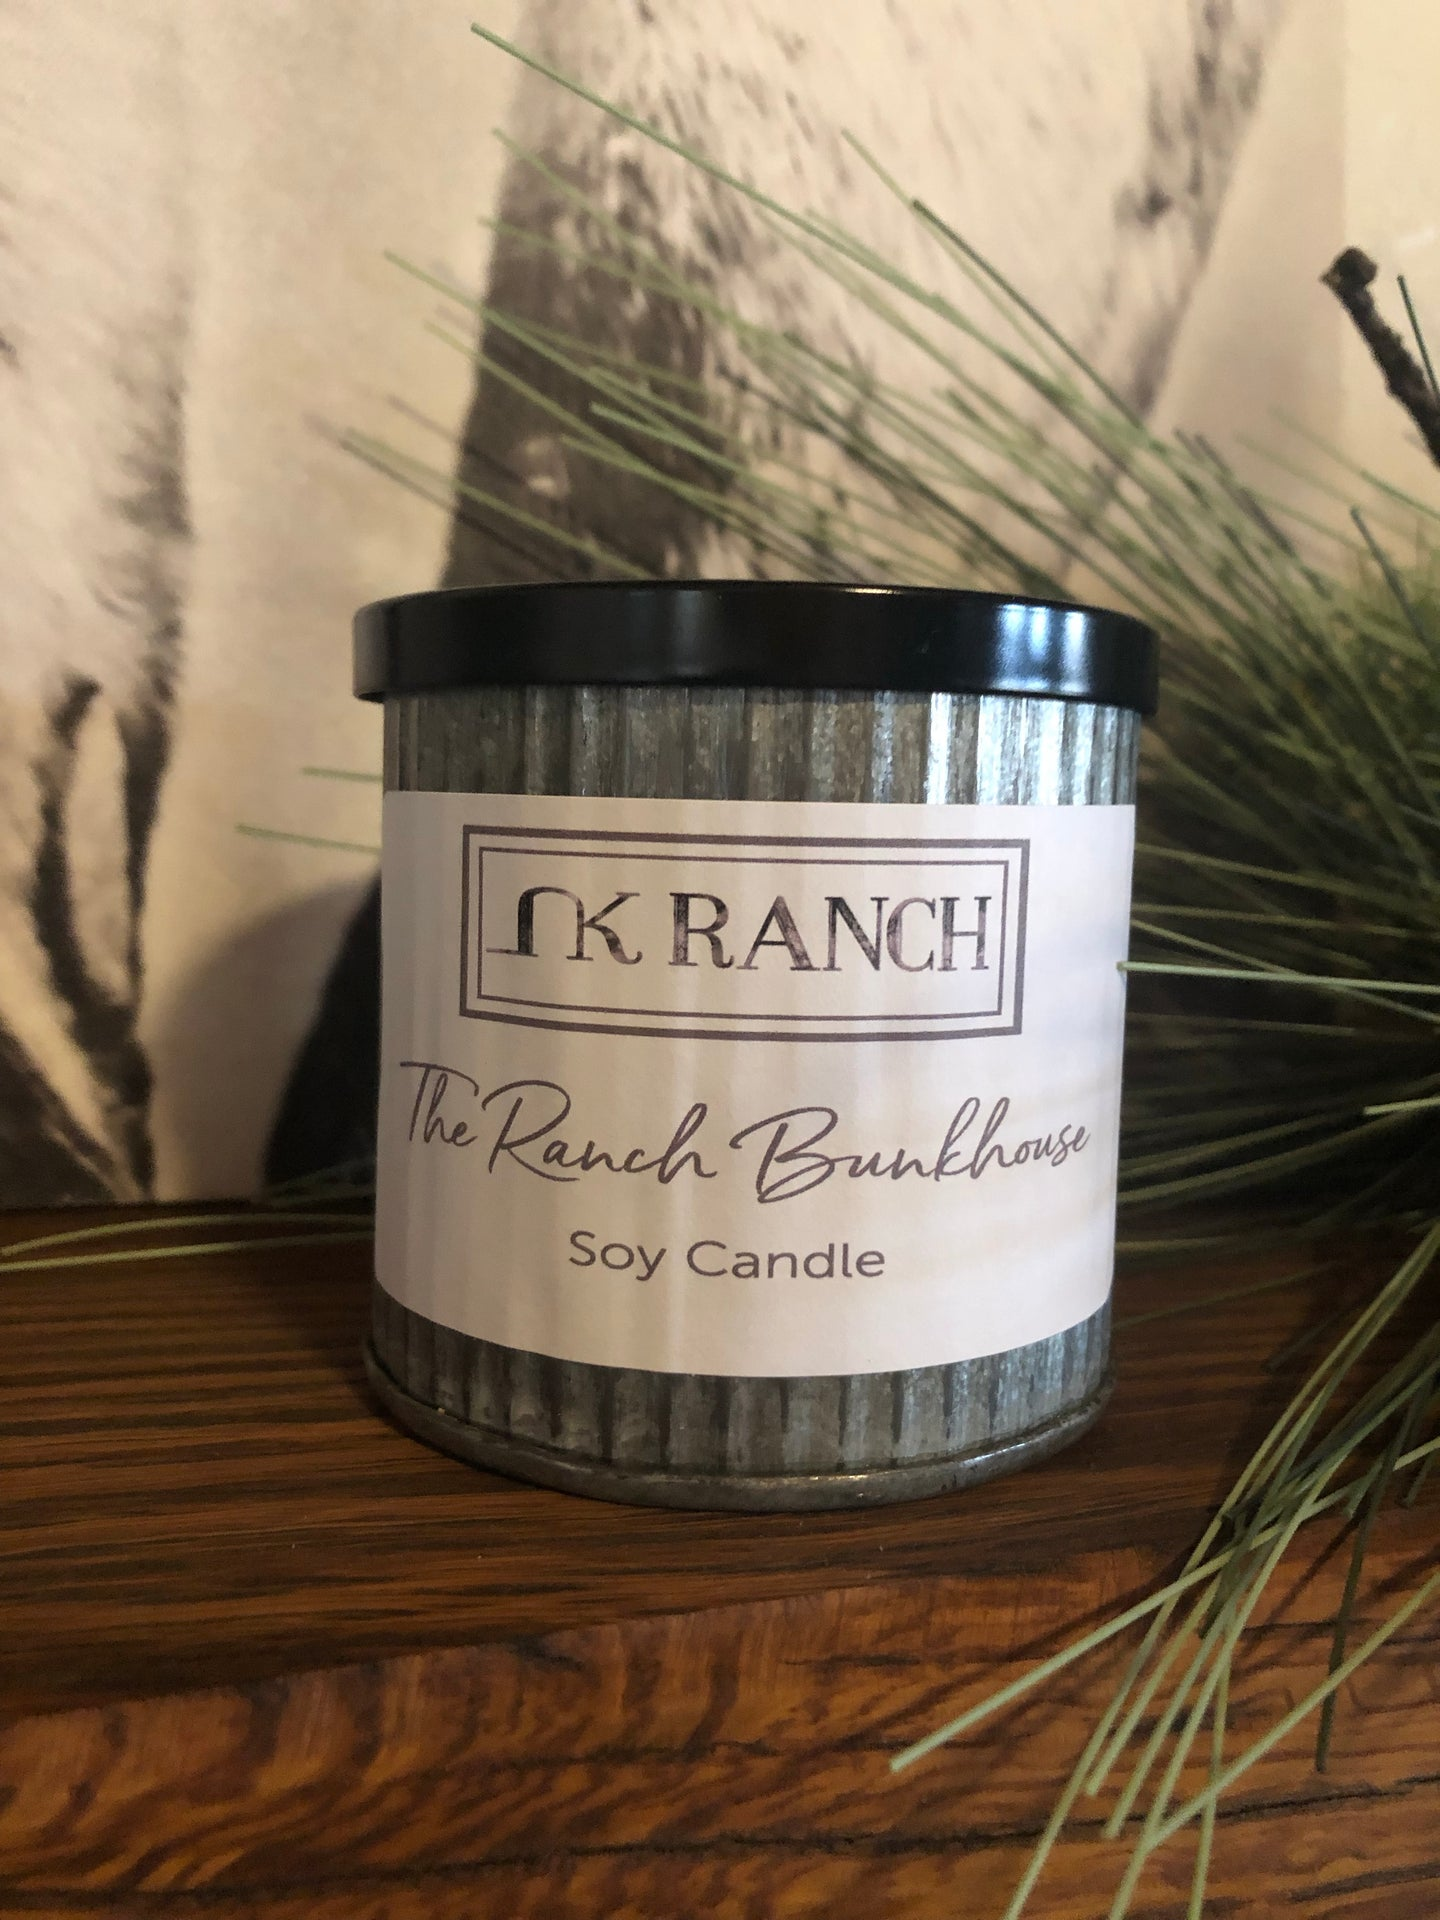 The Ranch Bunkhouse Crackling Soy Candle